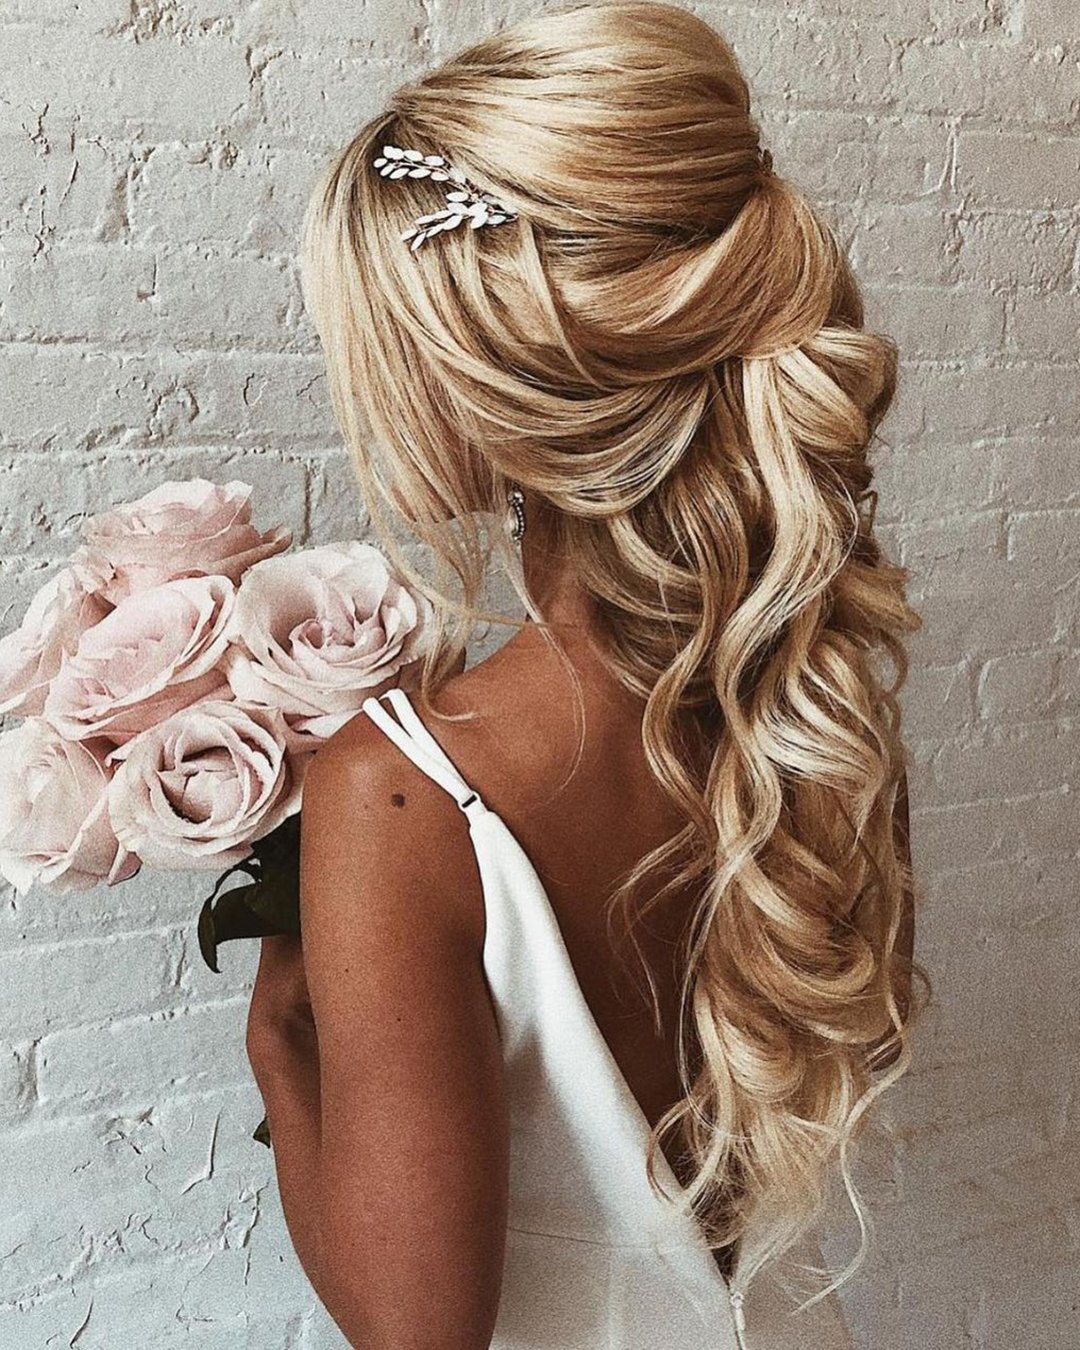 half up half down wedding hairstyles volume textured blonde ulyana.aster